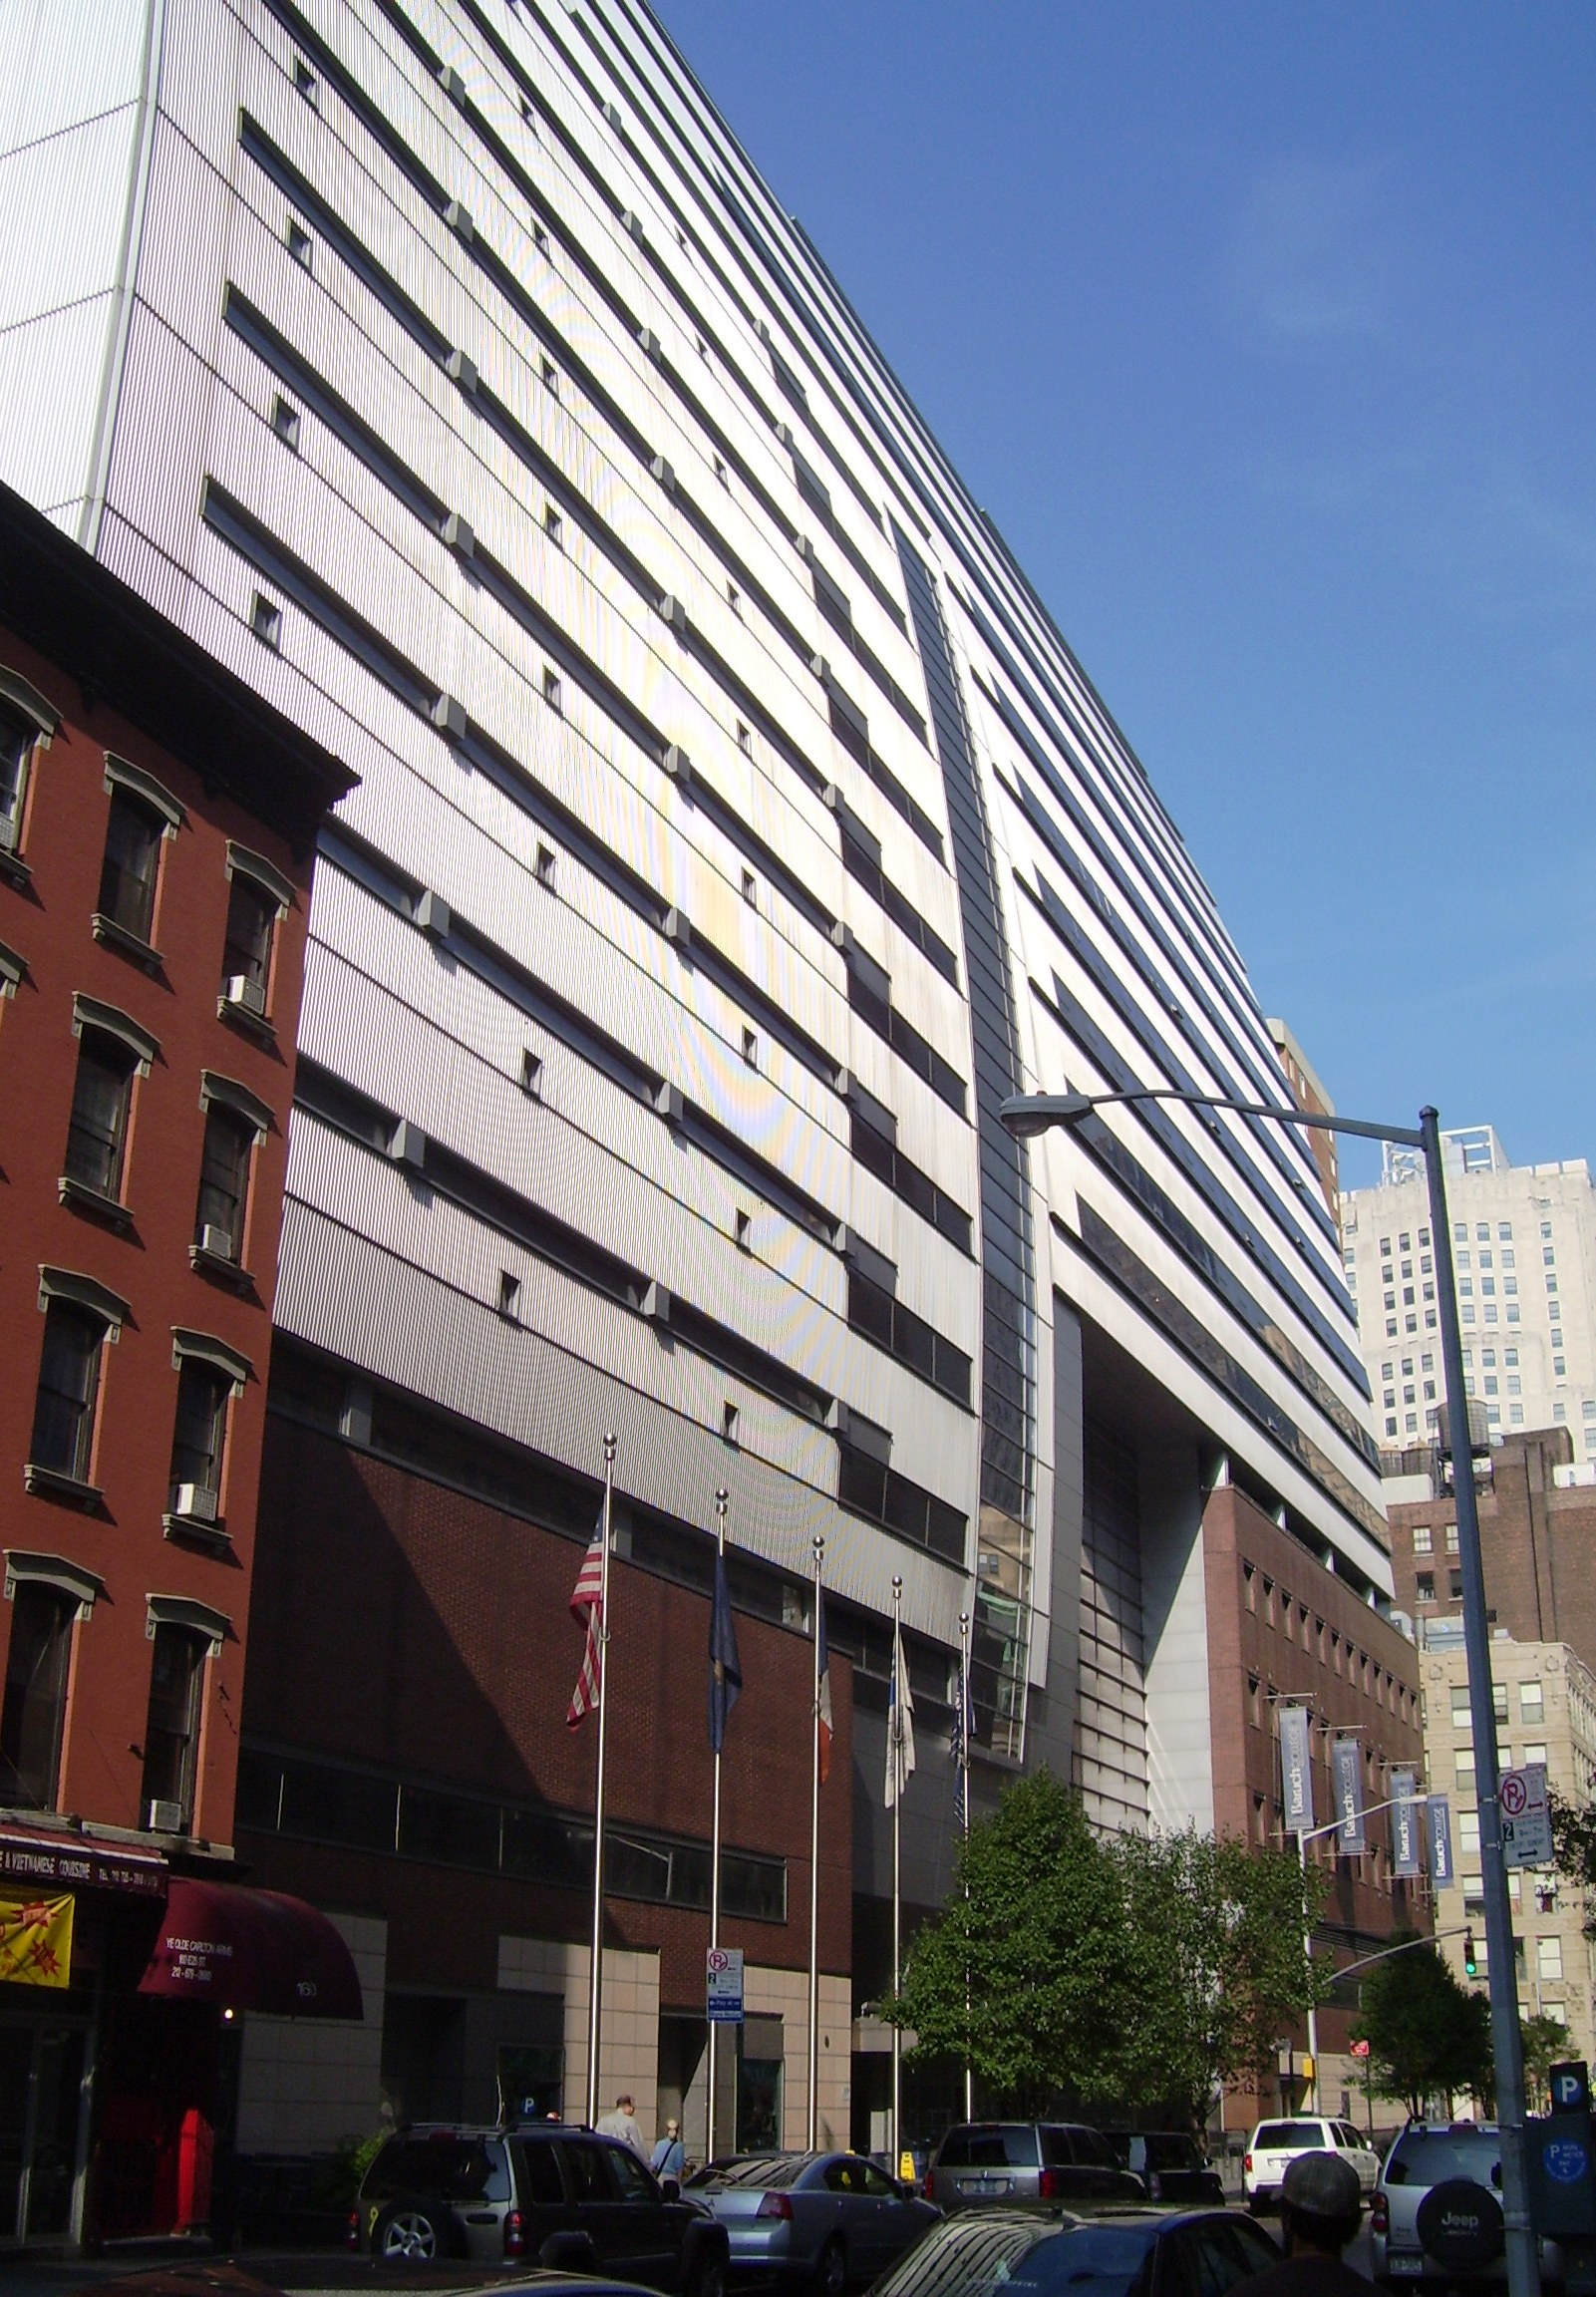 Baruch College Library - Home